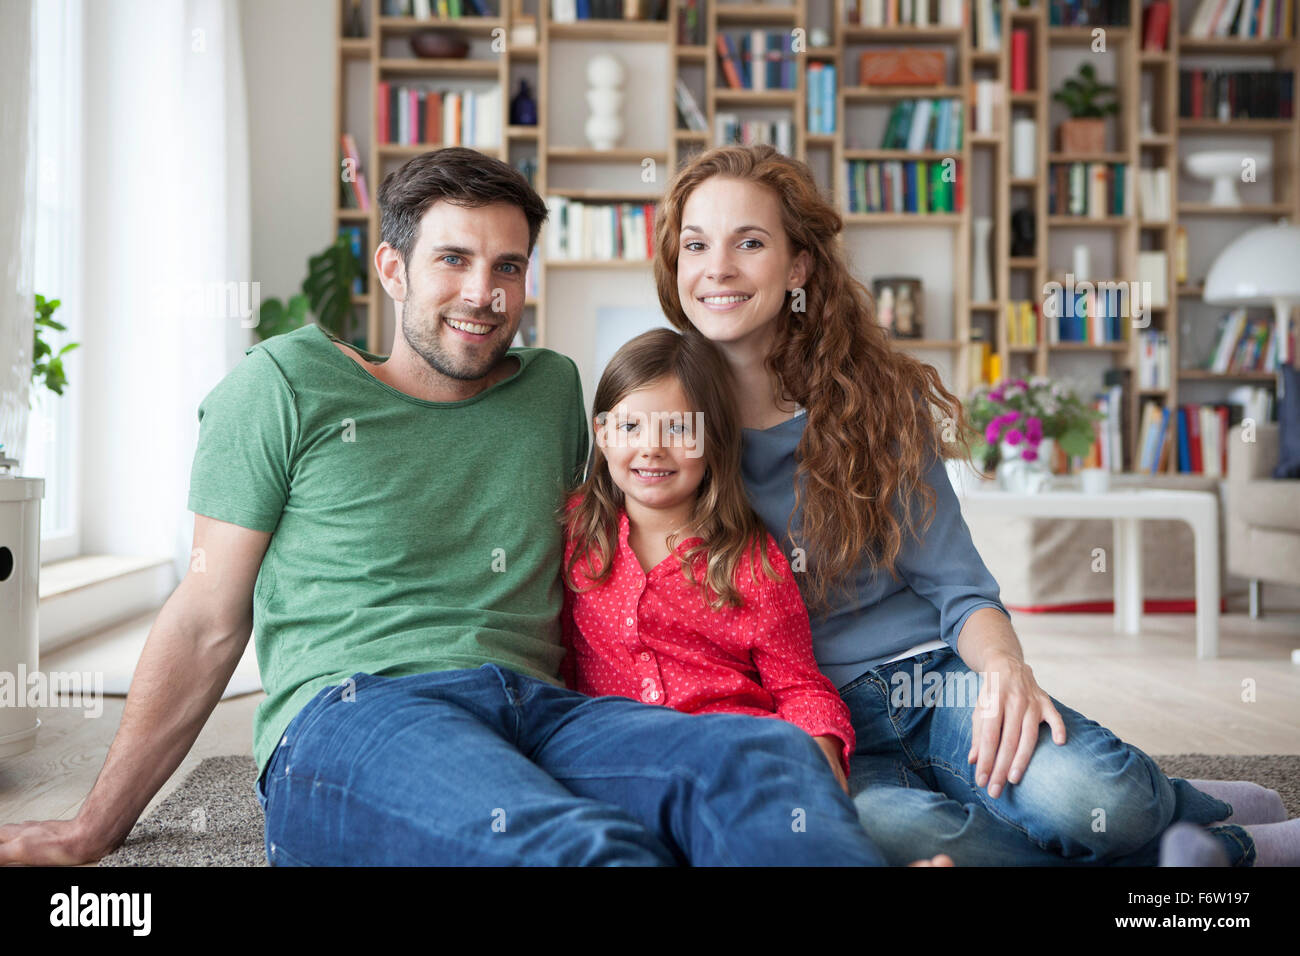 Portrait of little girl and her parents sitting together on floor in the living room - Stock Image